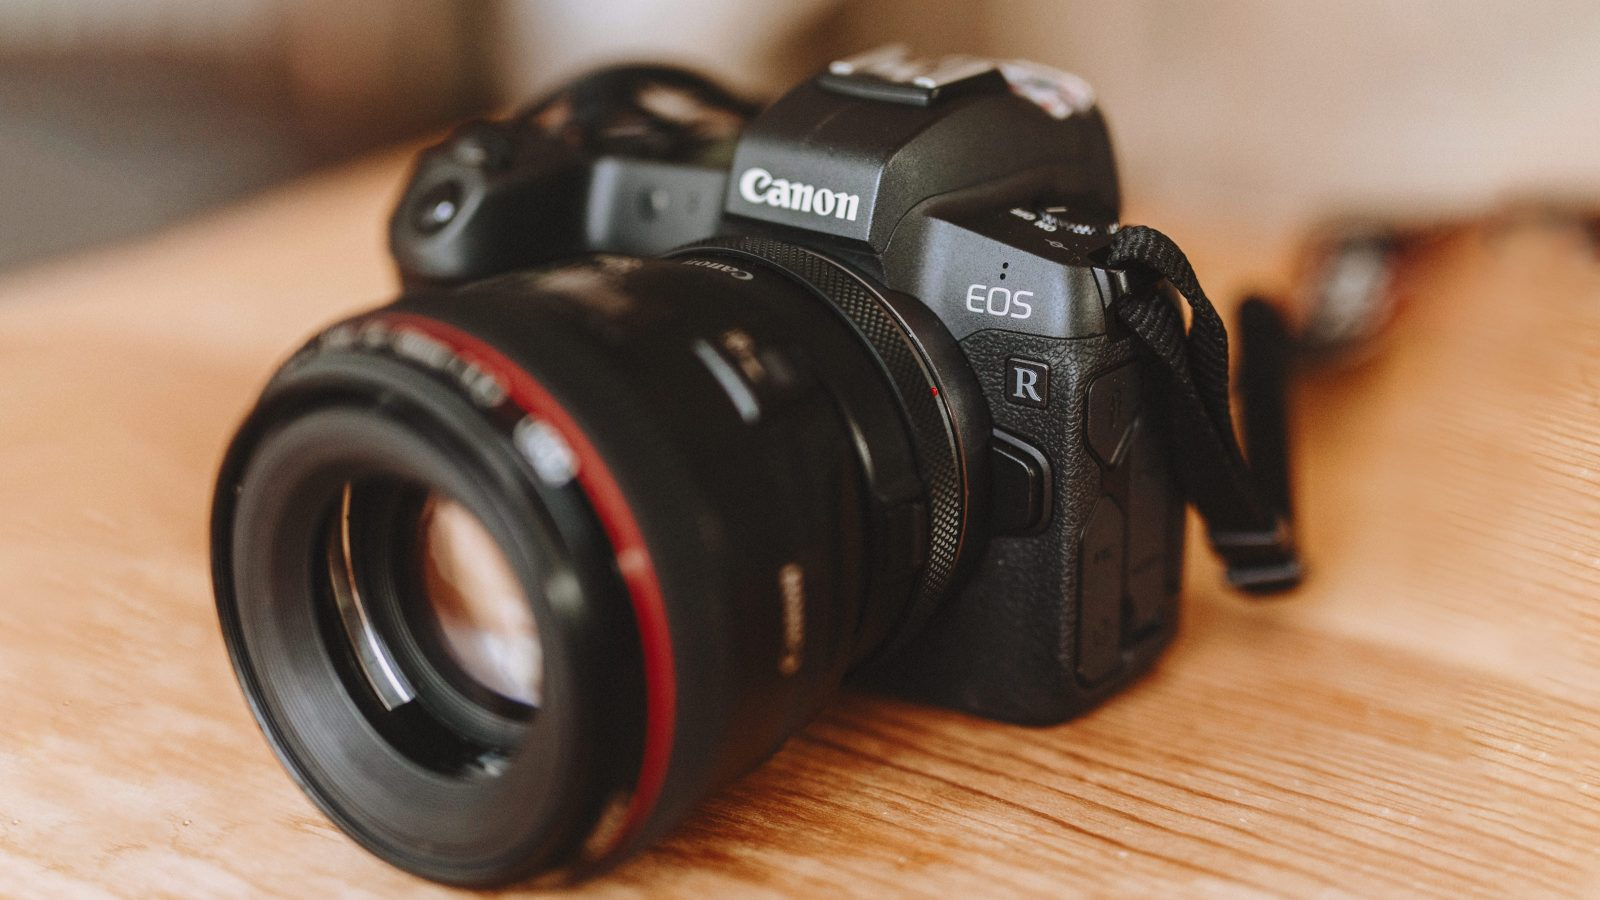 Canon EOS R Real World Review (Comparing to Canon 5D Mark IV)